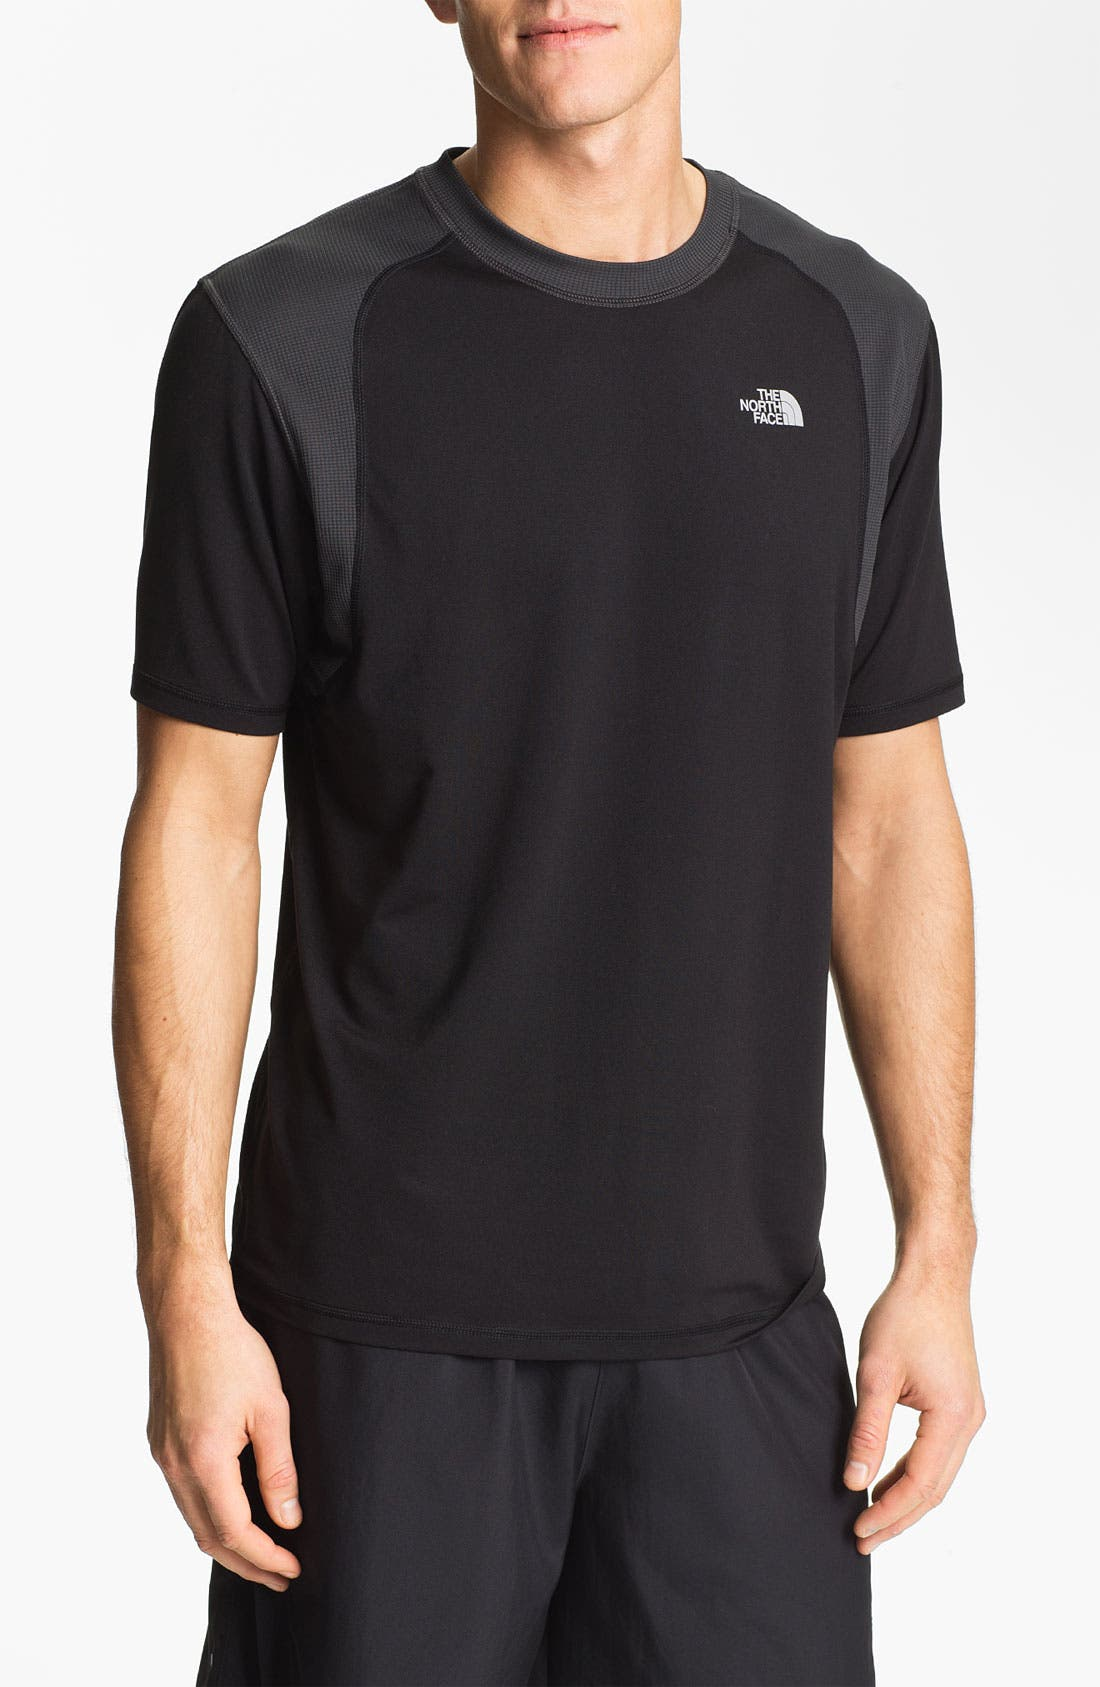 Alternate Image 1 Selected - The North Face 'Paramount' Tech Performance T-Shirt